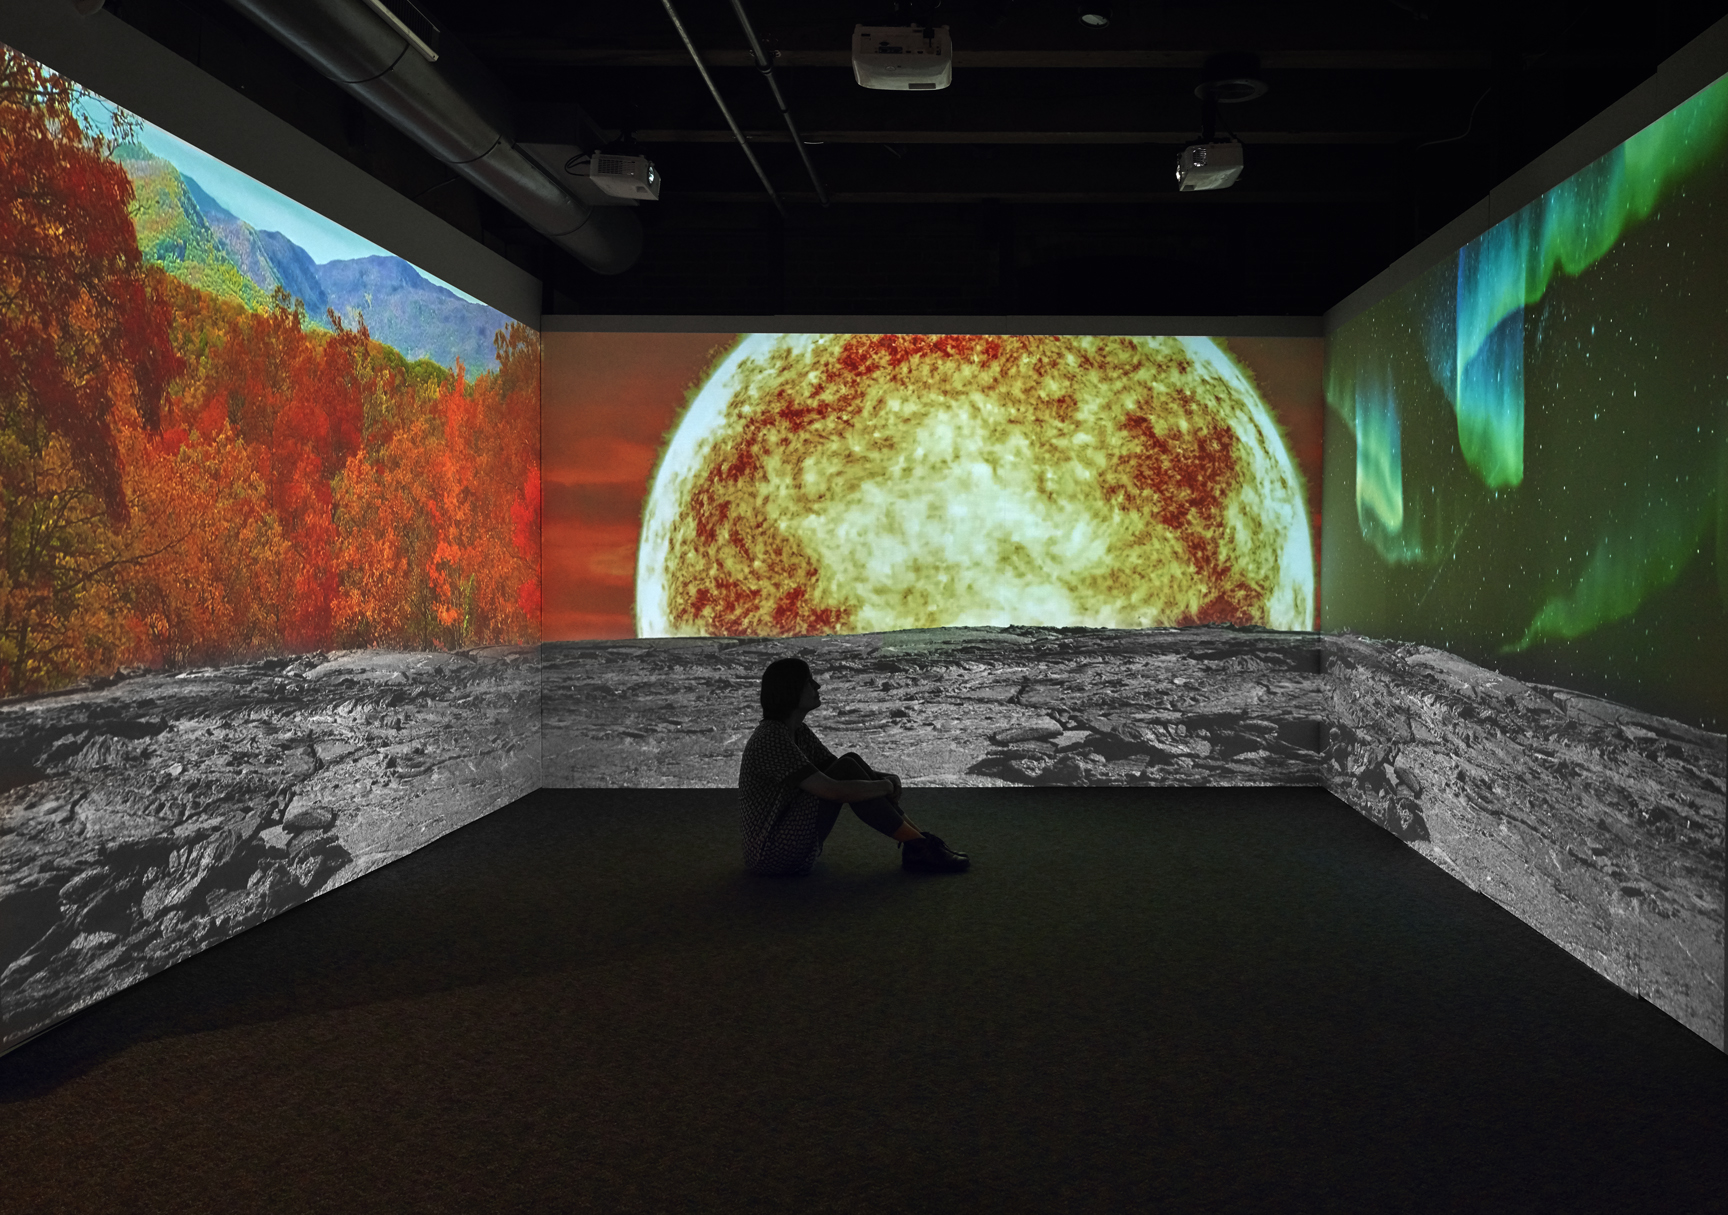 """Allison Maria Rodriguez is a first-generation Cuban-American interdisciplinary artist working predominately in video installation and new media. She creates immersive experiential spaces that challenge conventional ways of knowing and understanding the world. Her work focuses extensively on climate change, species extinction, and the interconnectivity of existence. See Rodriguez's most recent work in Fountain Street's May 2019 main gallery exhibition """" Secrets of the Unseen ."""""""